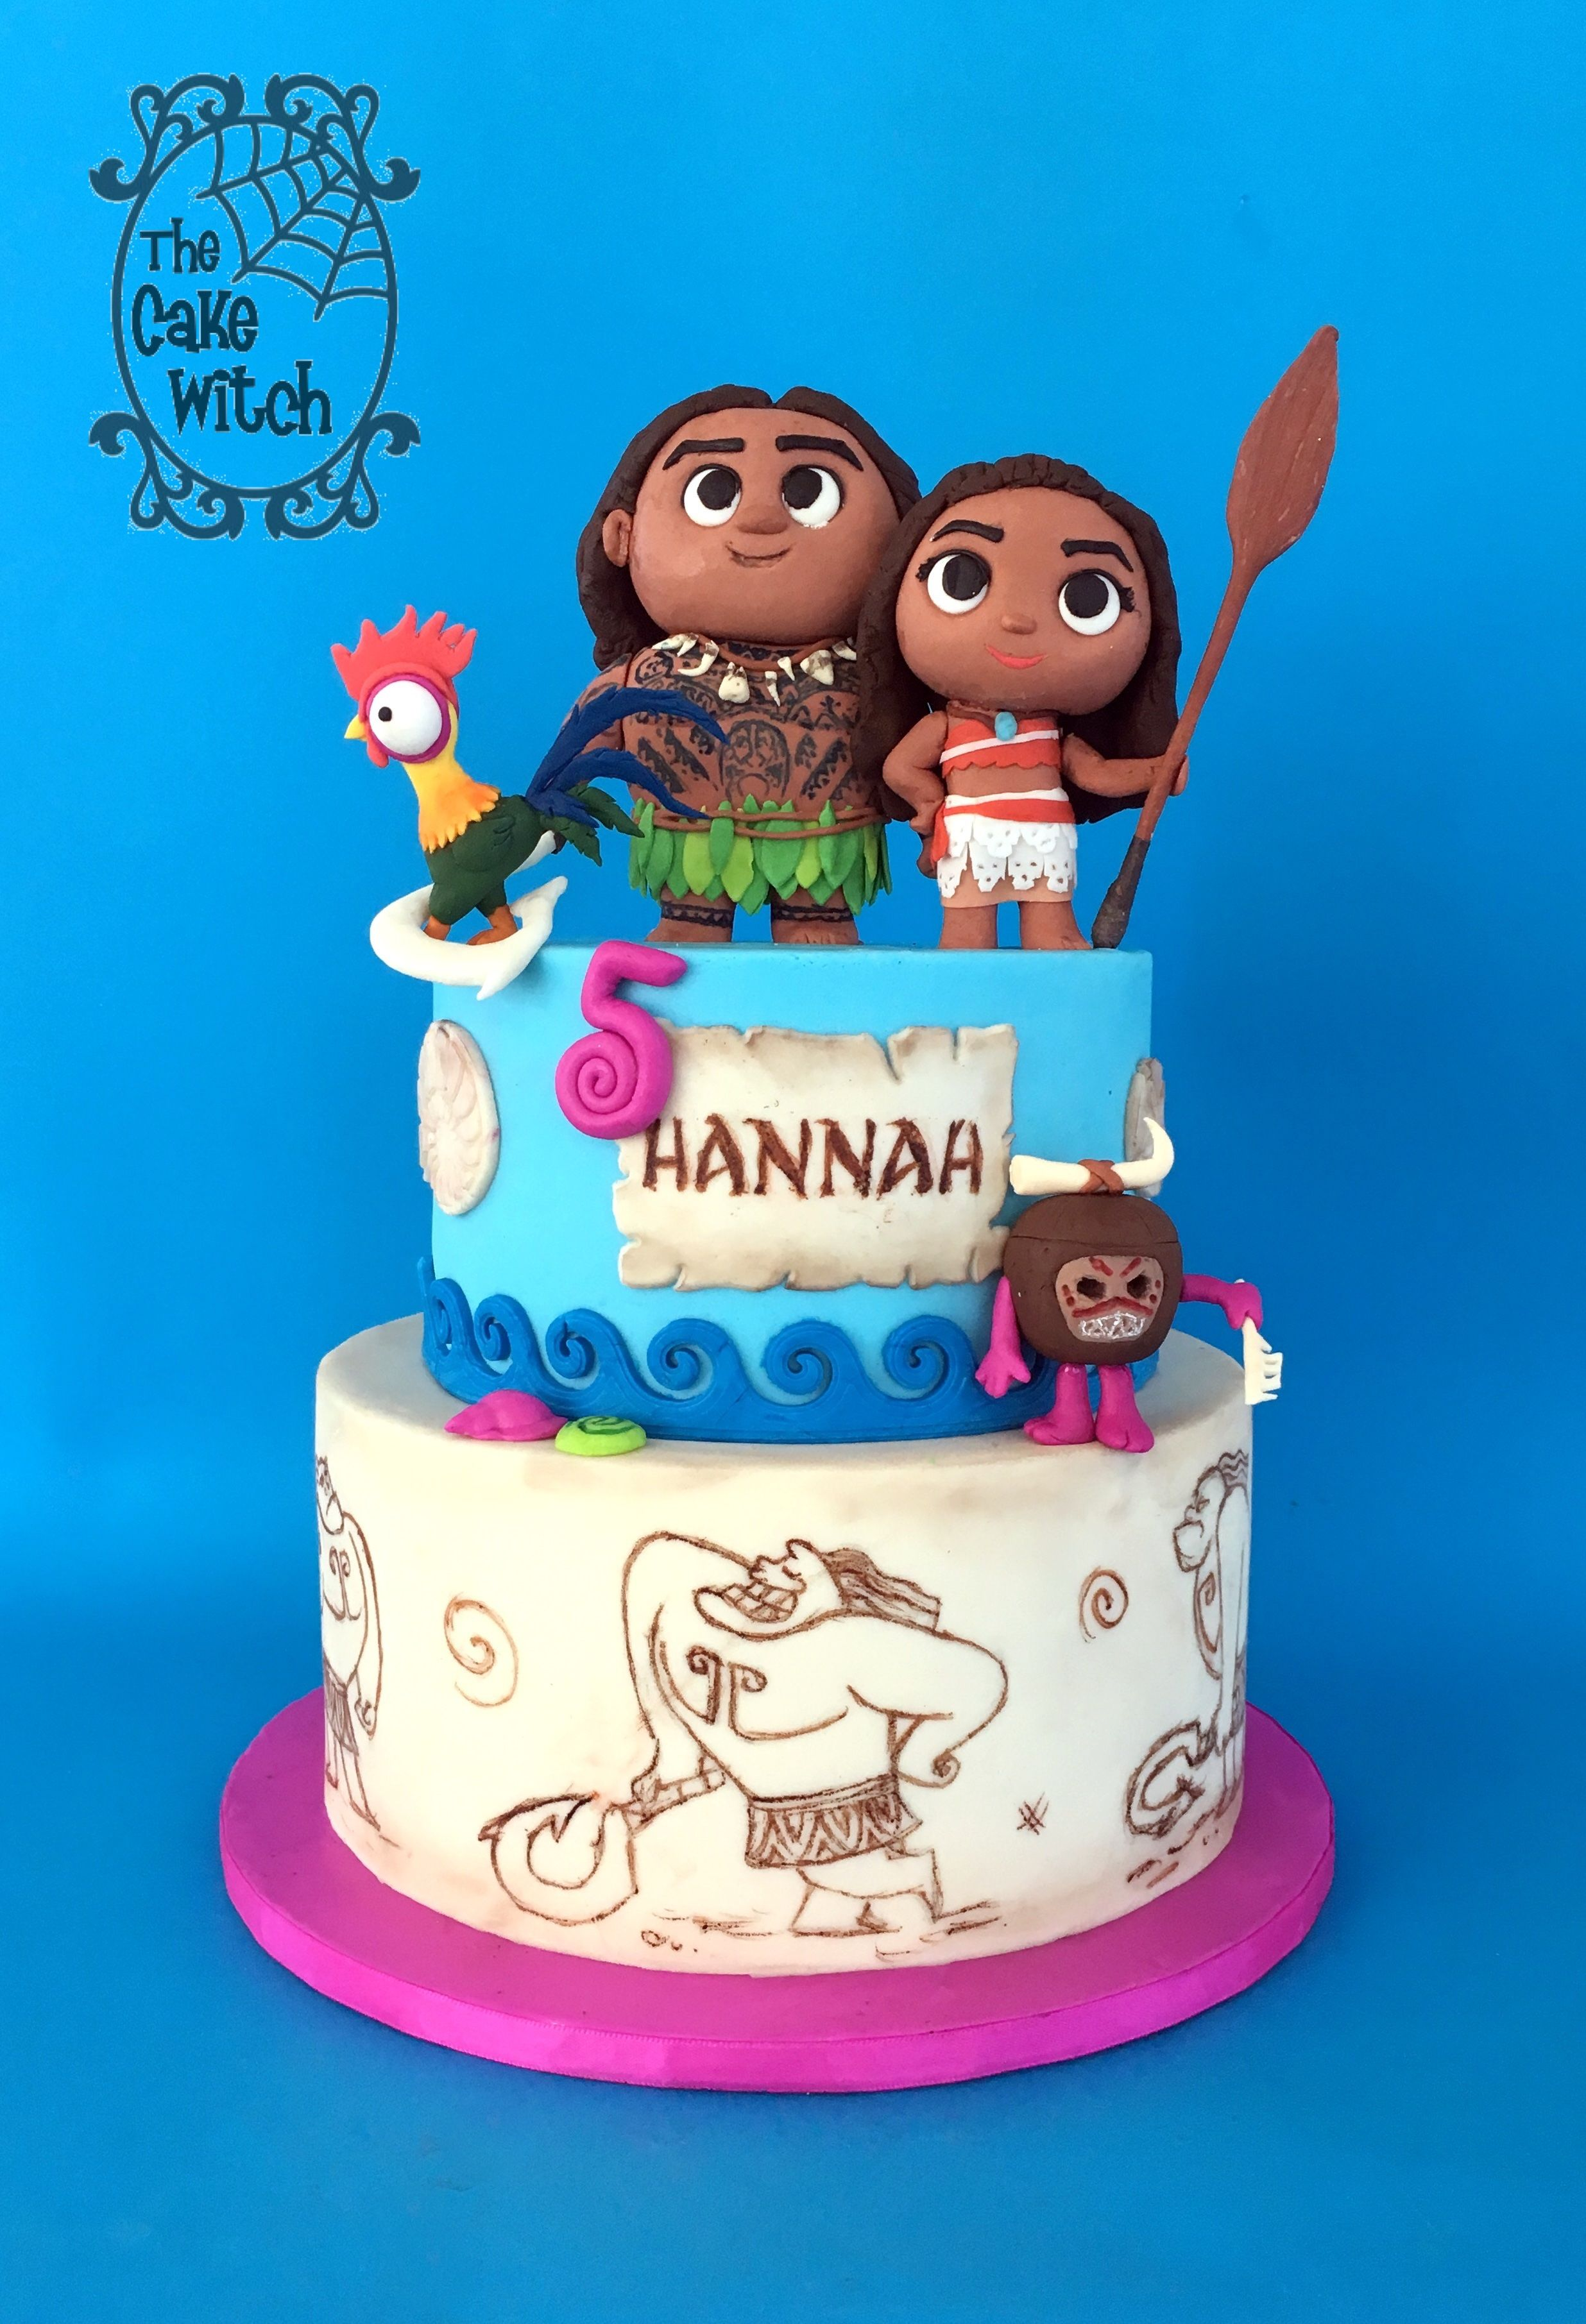 moana birthday cake with heyhey maui and kakamora figurines the